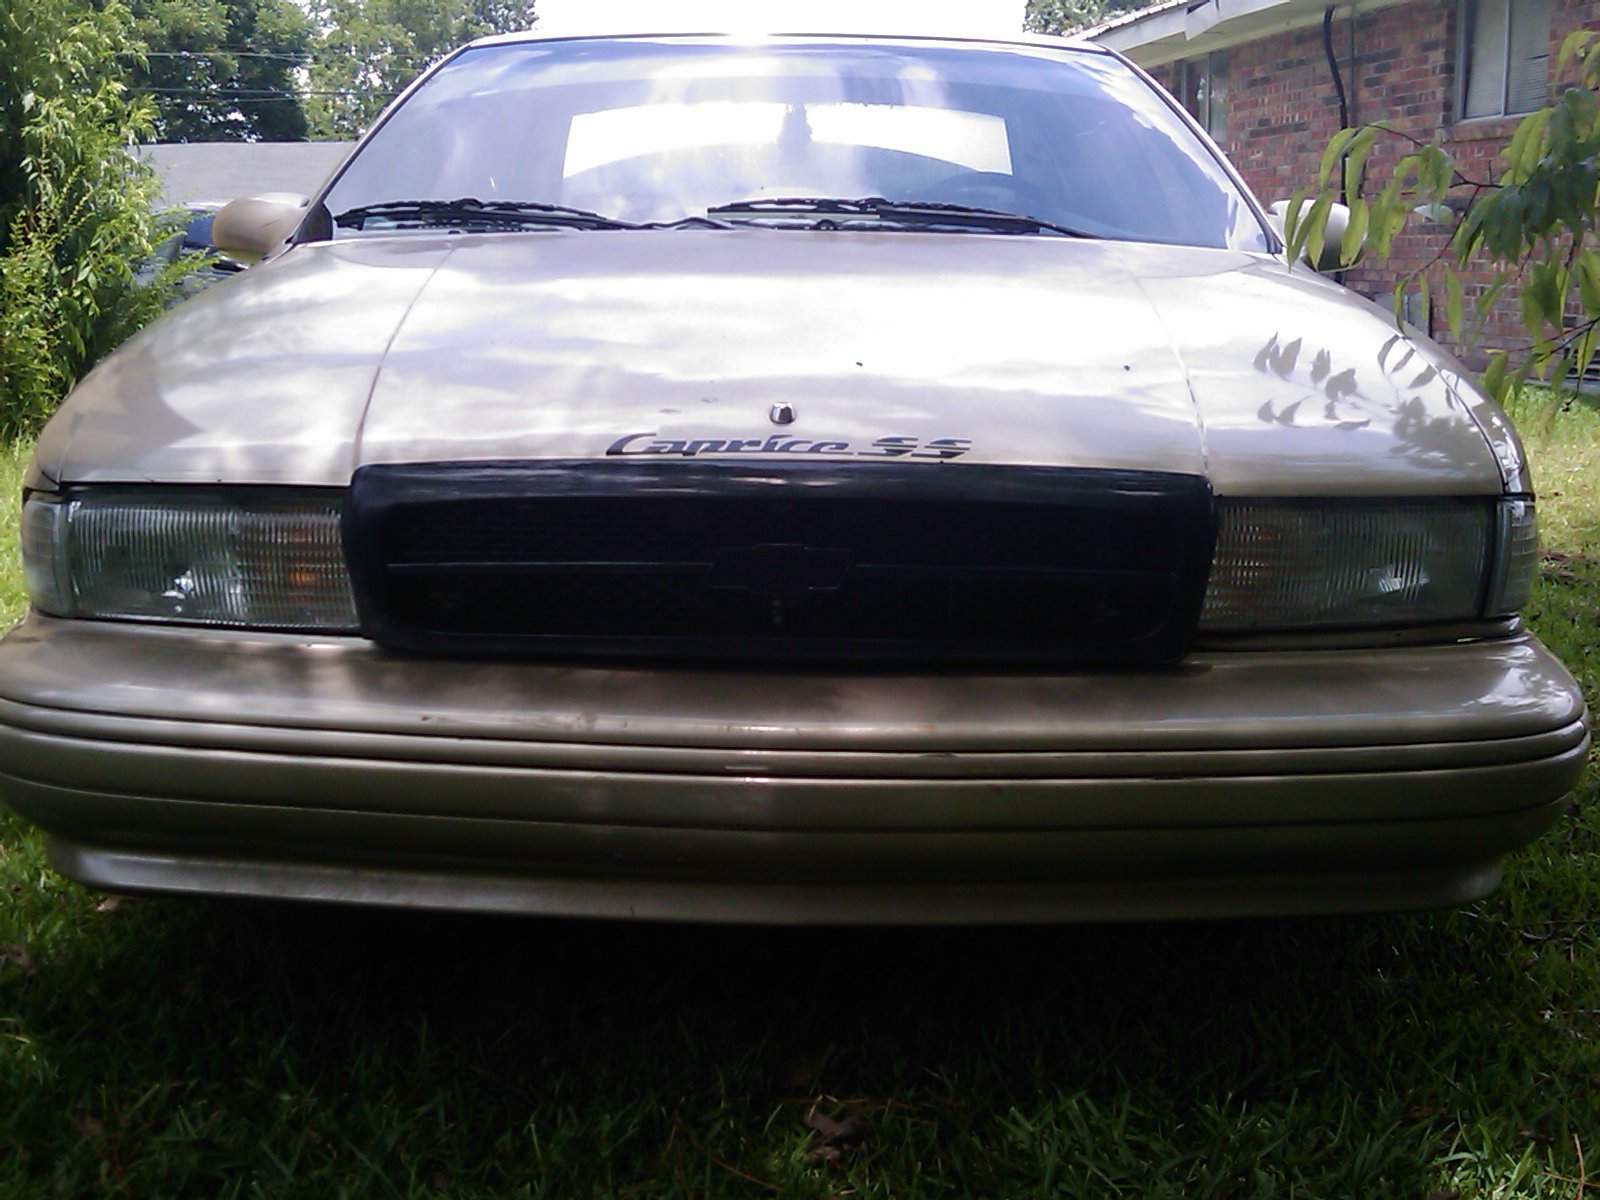 Another b_i_g_cg 1995 Chevrolet Caprice post... - 12909183